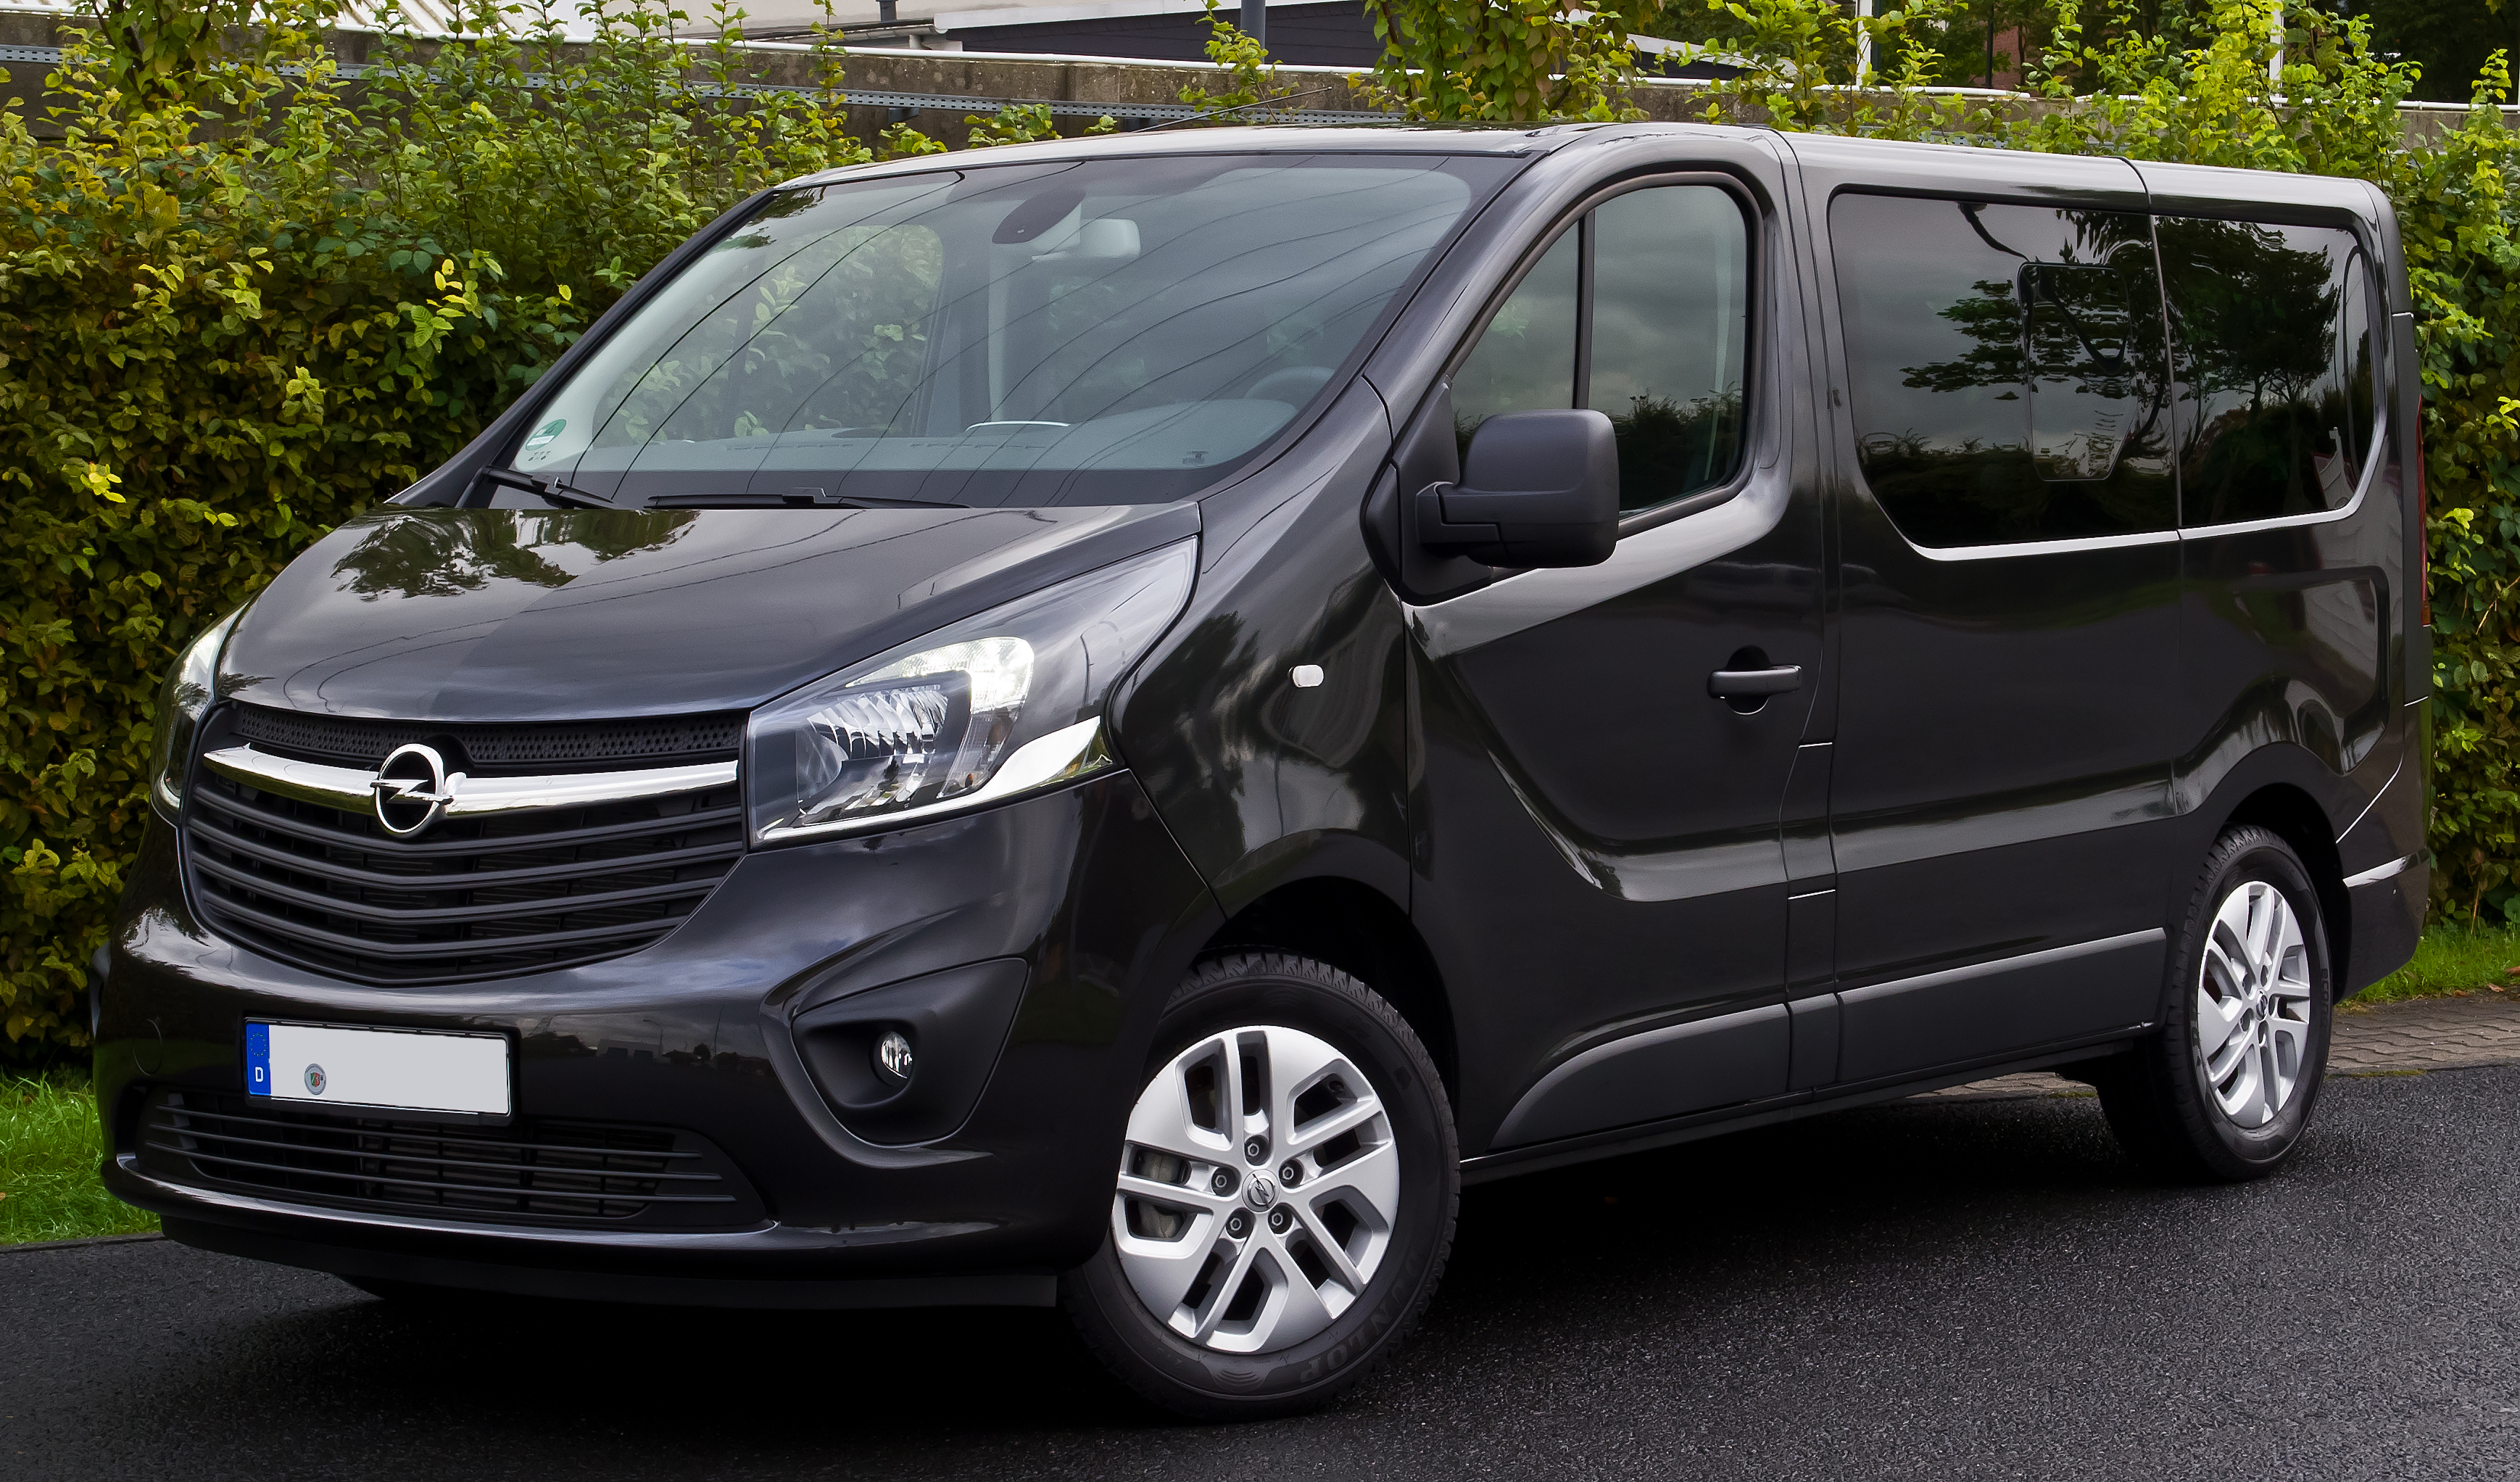 opel vivaro opel vivaro sport adds new exterior package gm authority irmscher spices up the. Black Bedroom Furniture Sets. Home Design Ideas